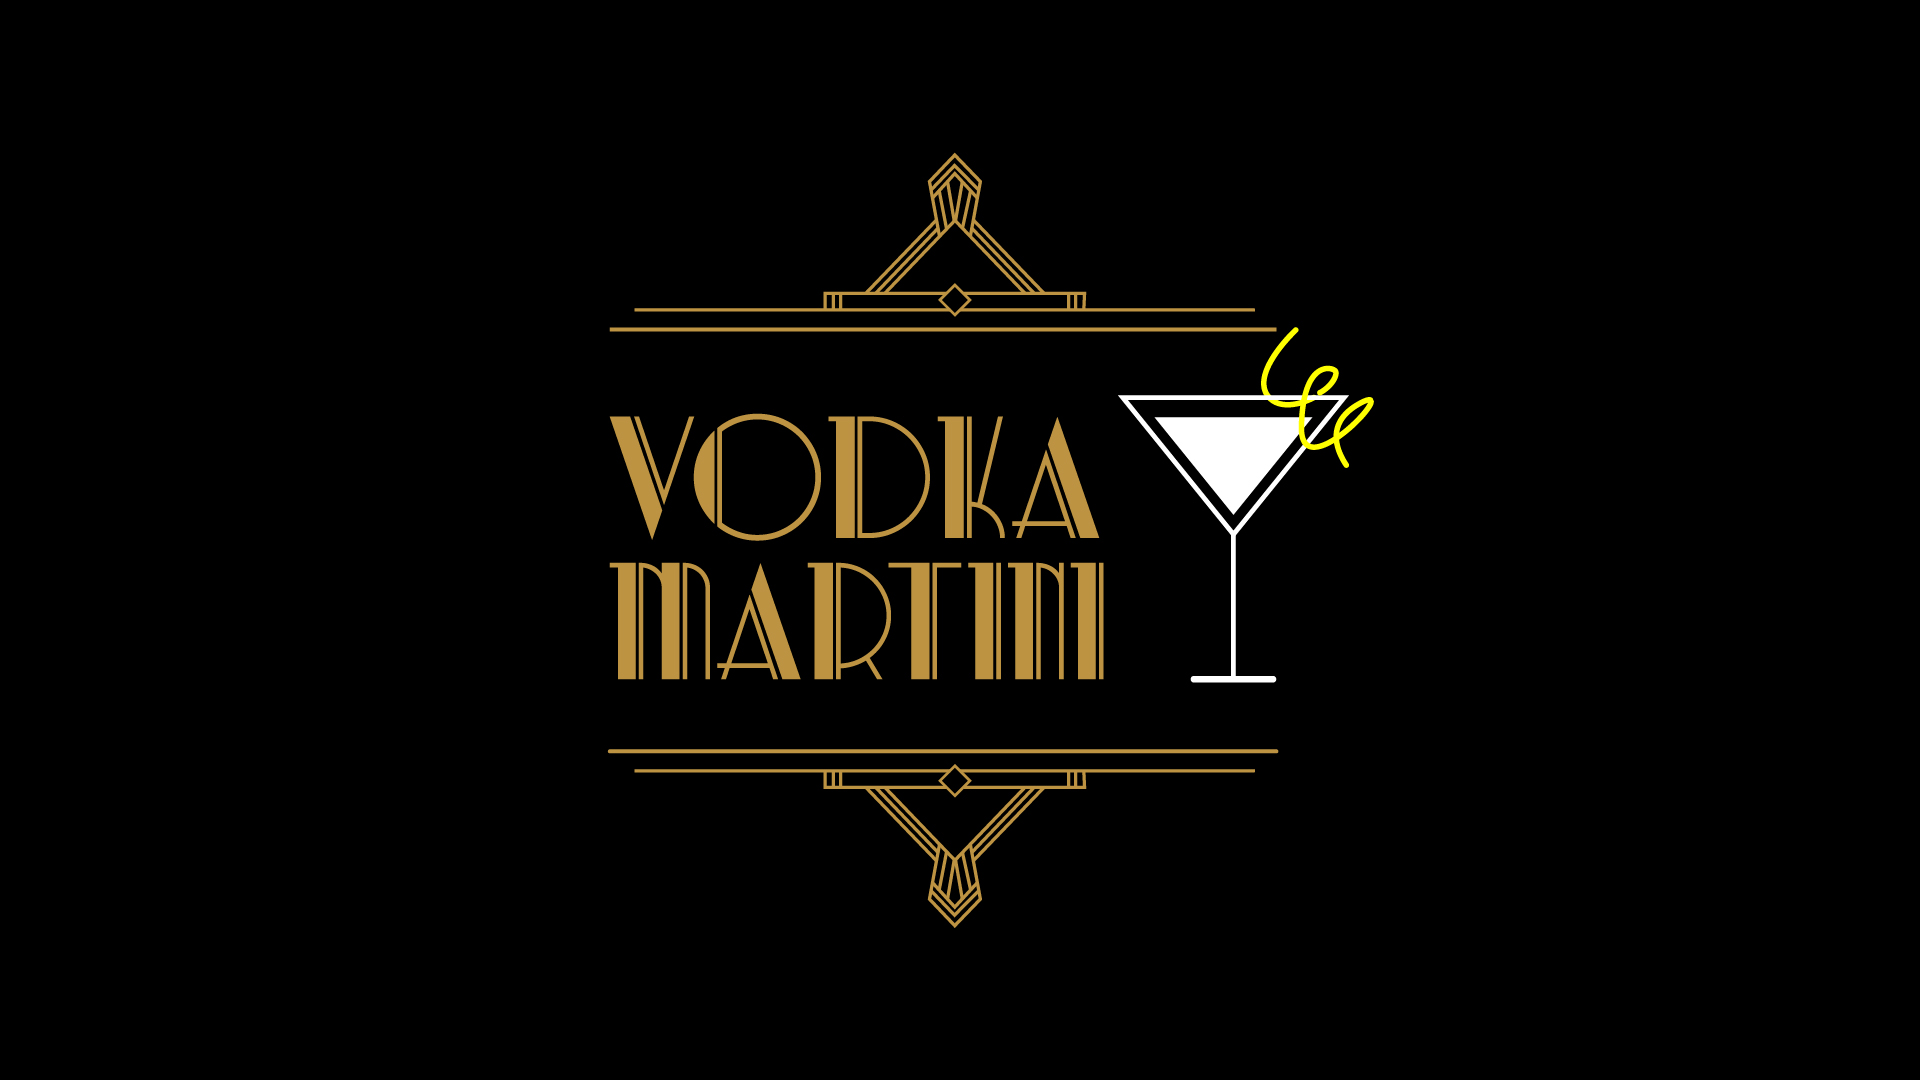 Vodka Martini_Compo-02.jpg